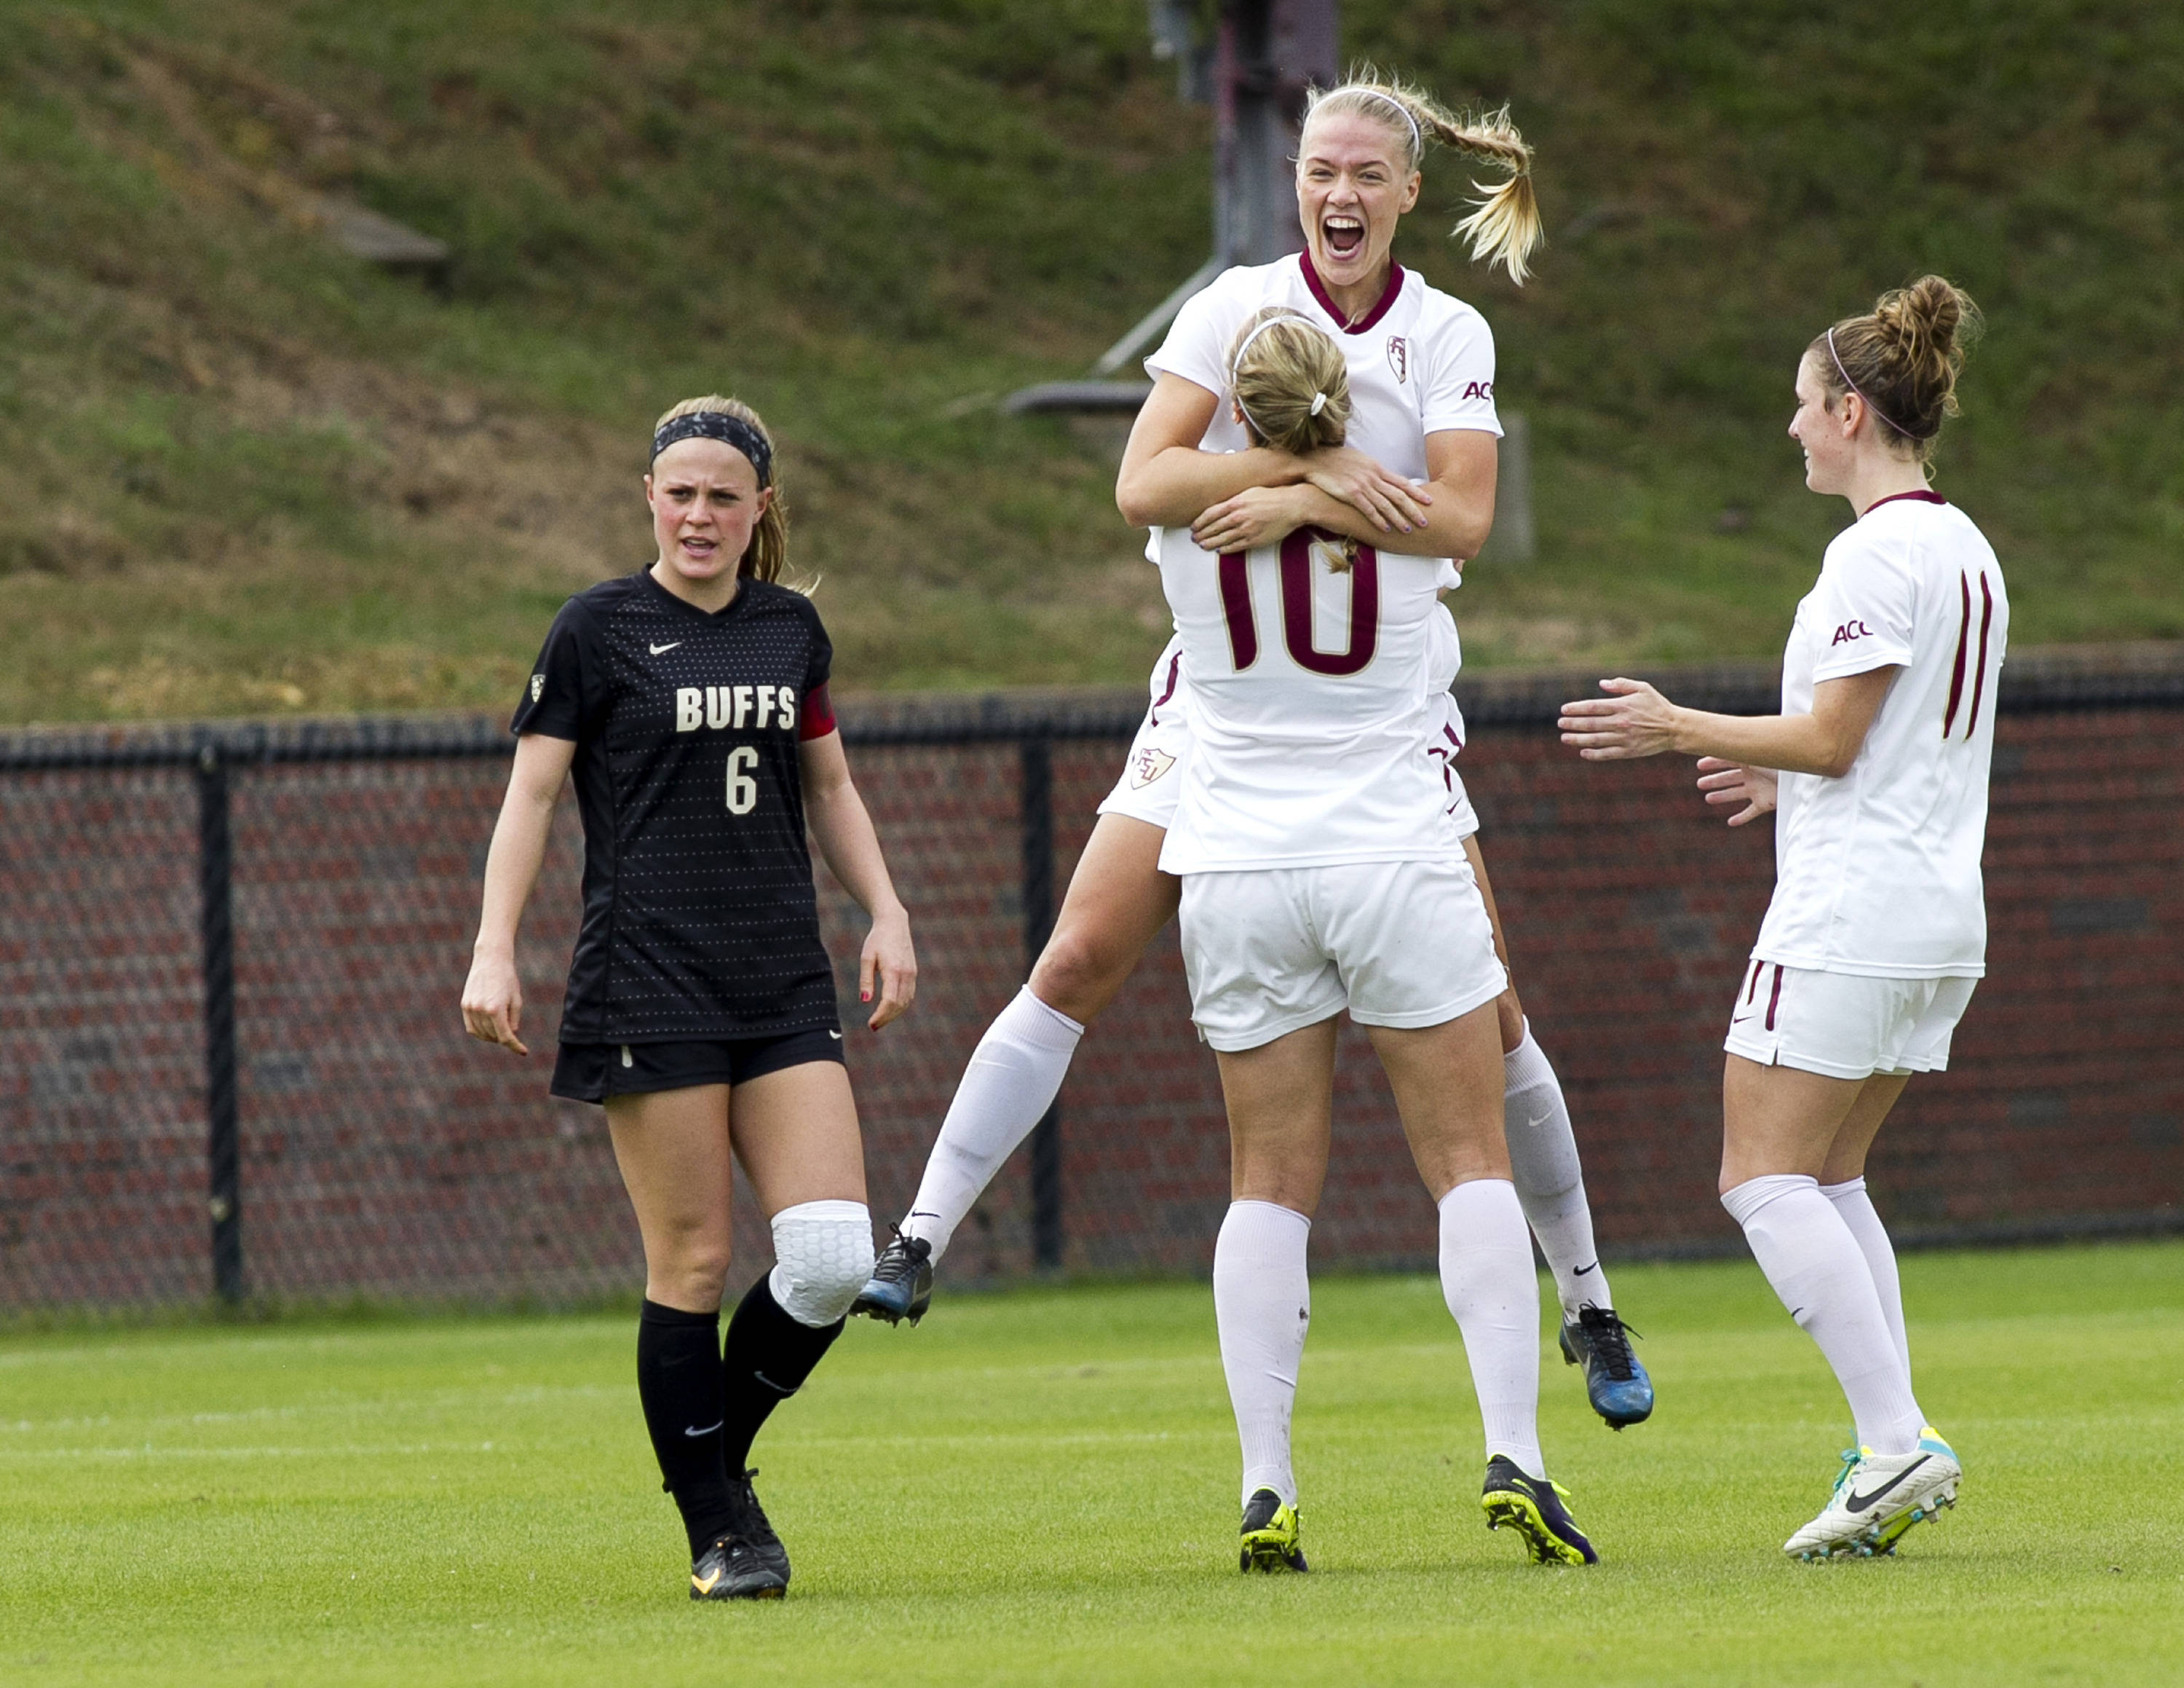 Dagny Brynjarsdottir (7) celebrating scoring the first goal, FSU vs Colorado, 11-23-13, 3rd round NCAA Tournament (Photo by Steve Musco)